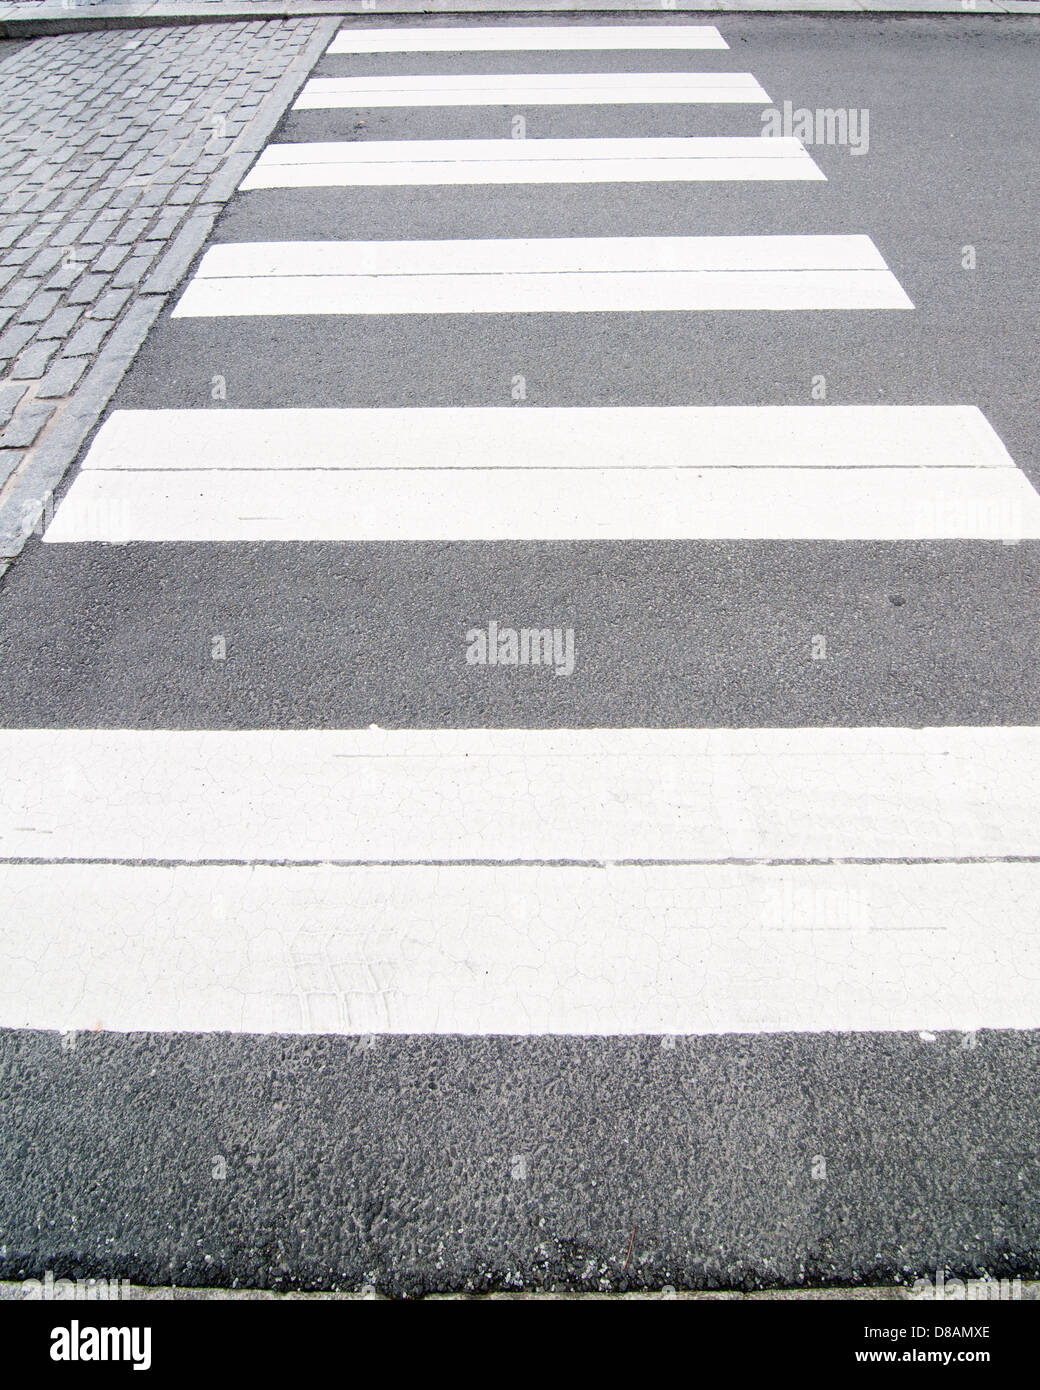 The picture of a crosswalk - Stock Image